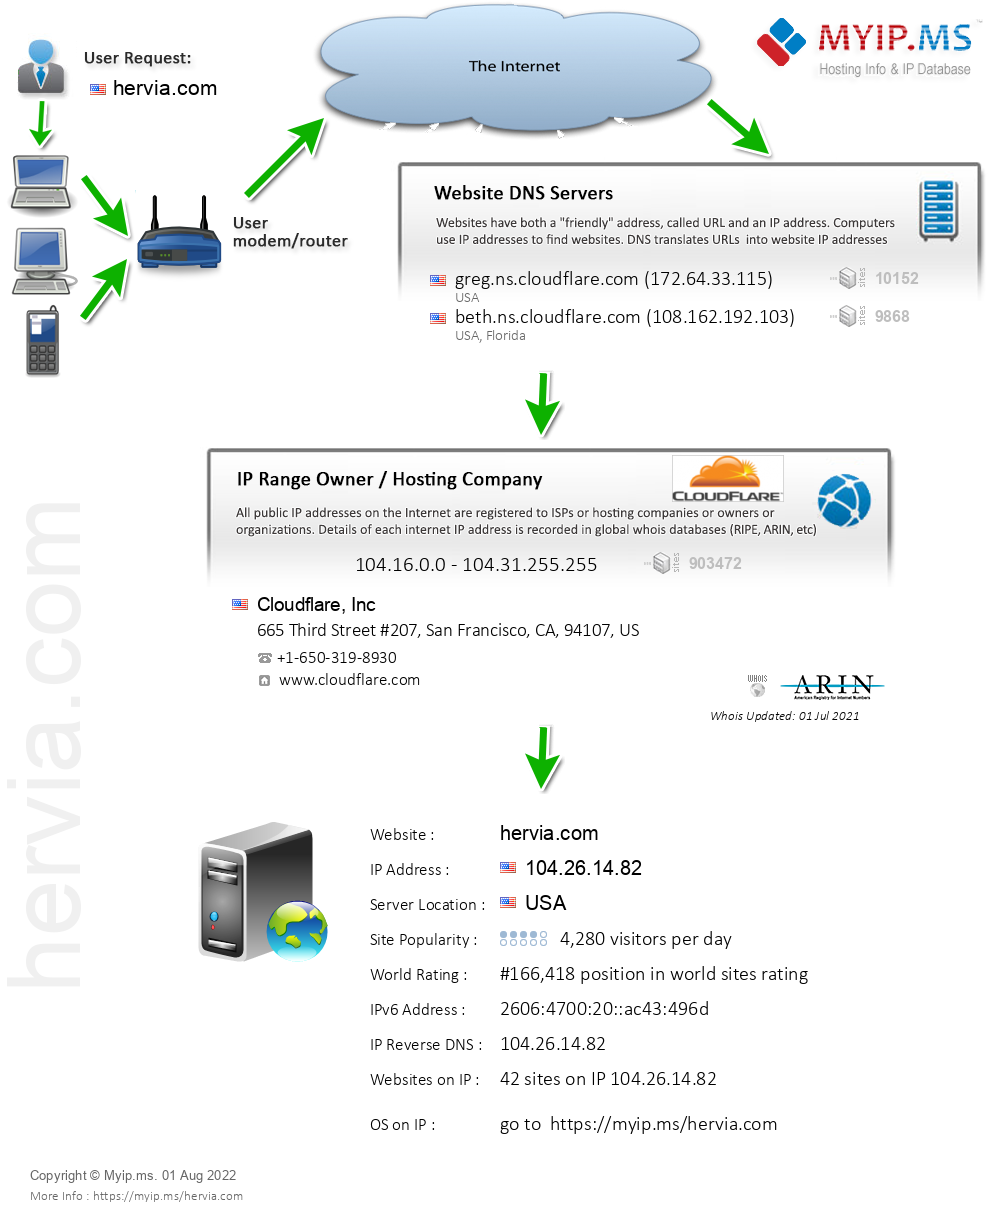 Hervia.com - Website Hosting Visual IP Diagram